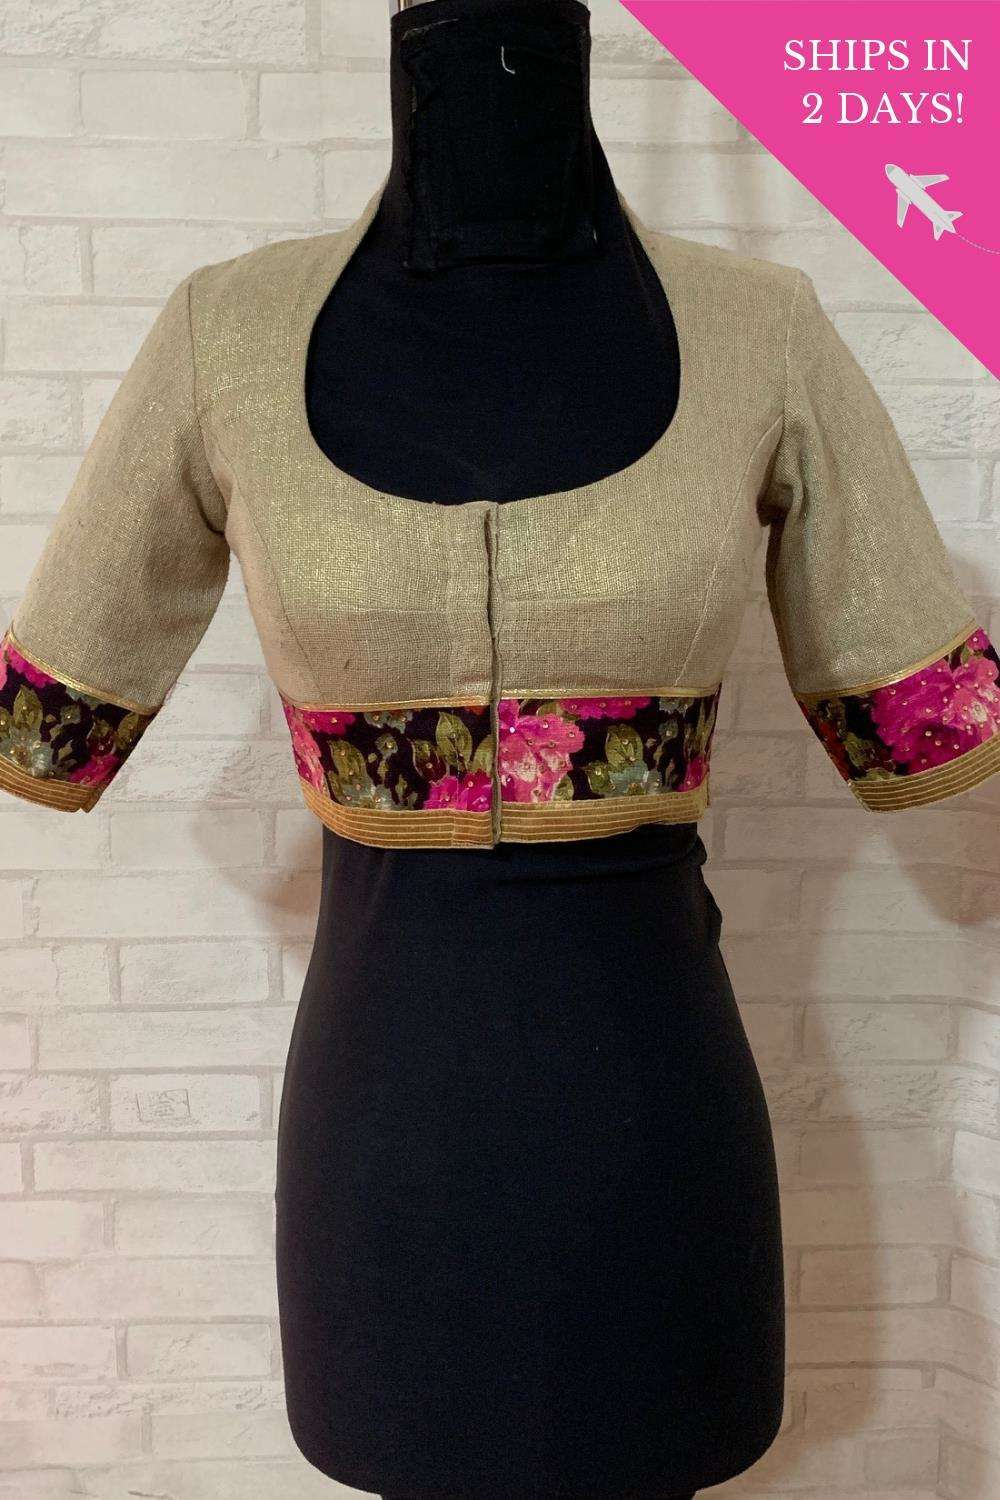 Gold shimmer jute Pot neck blouse with floral border; Size: 34 - House of Blouse